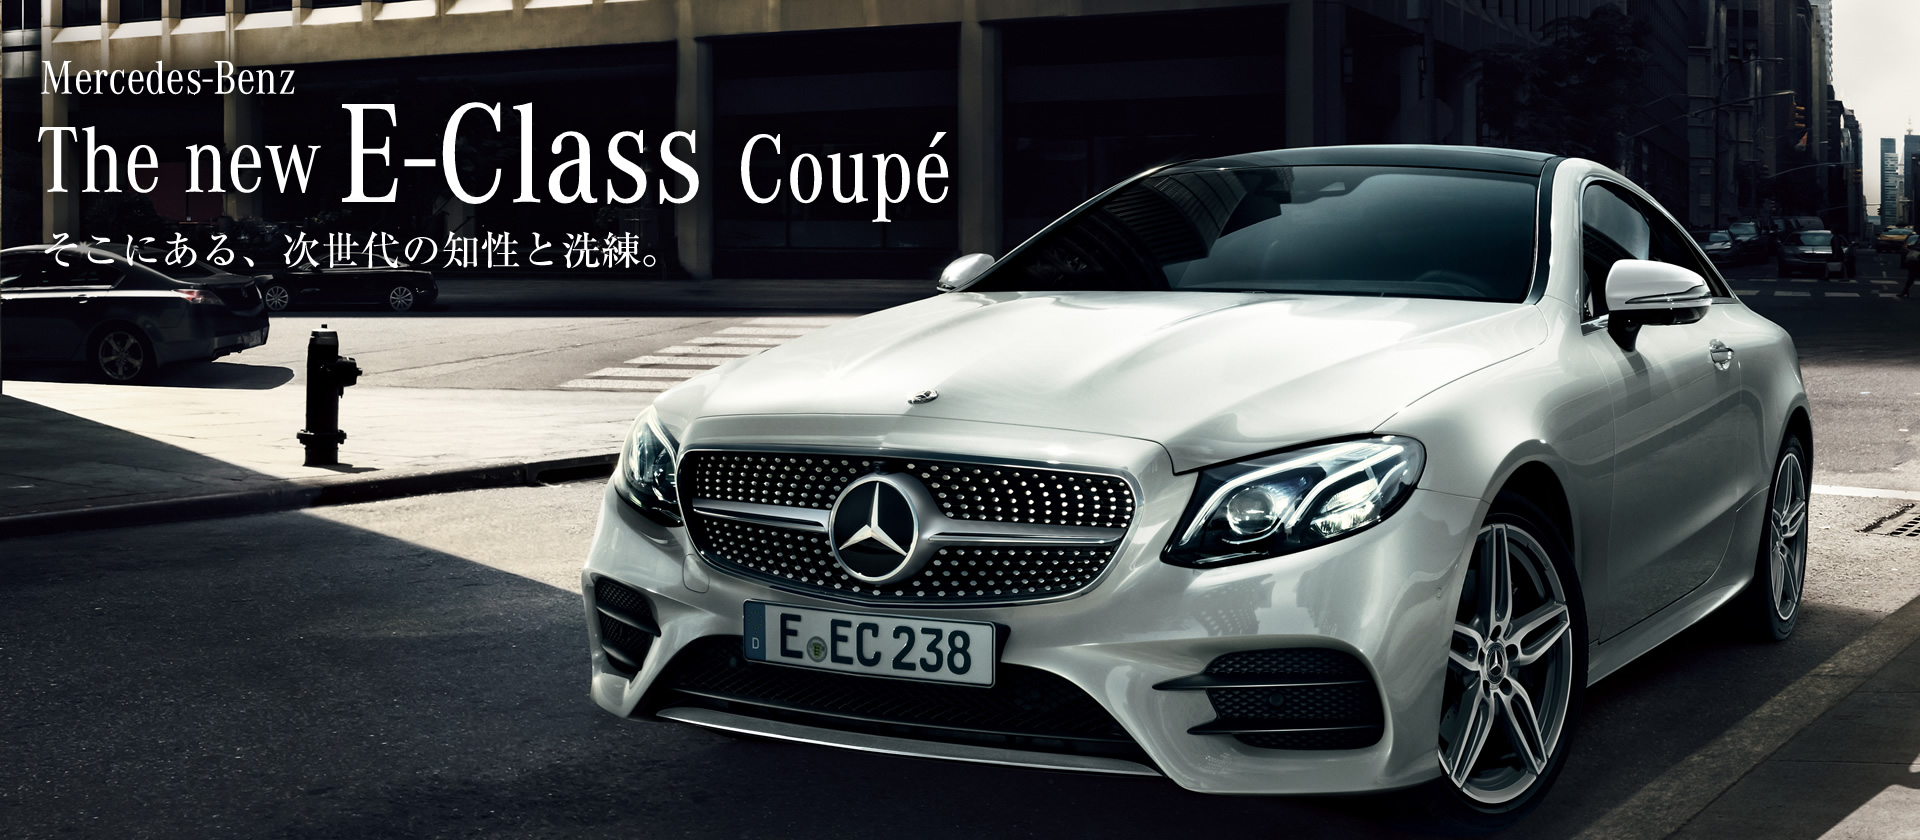 Mercedes-Benz The new E-Class Coupe そこにある、次世代の知性と洗練。